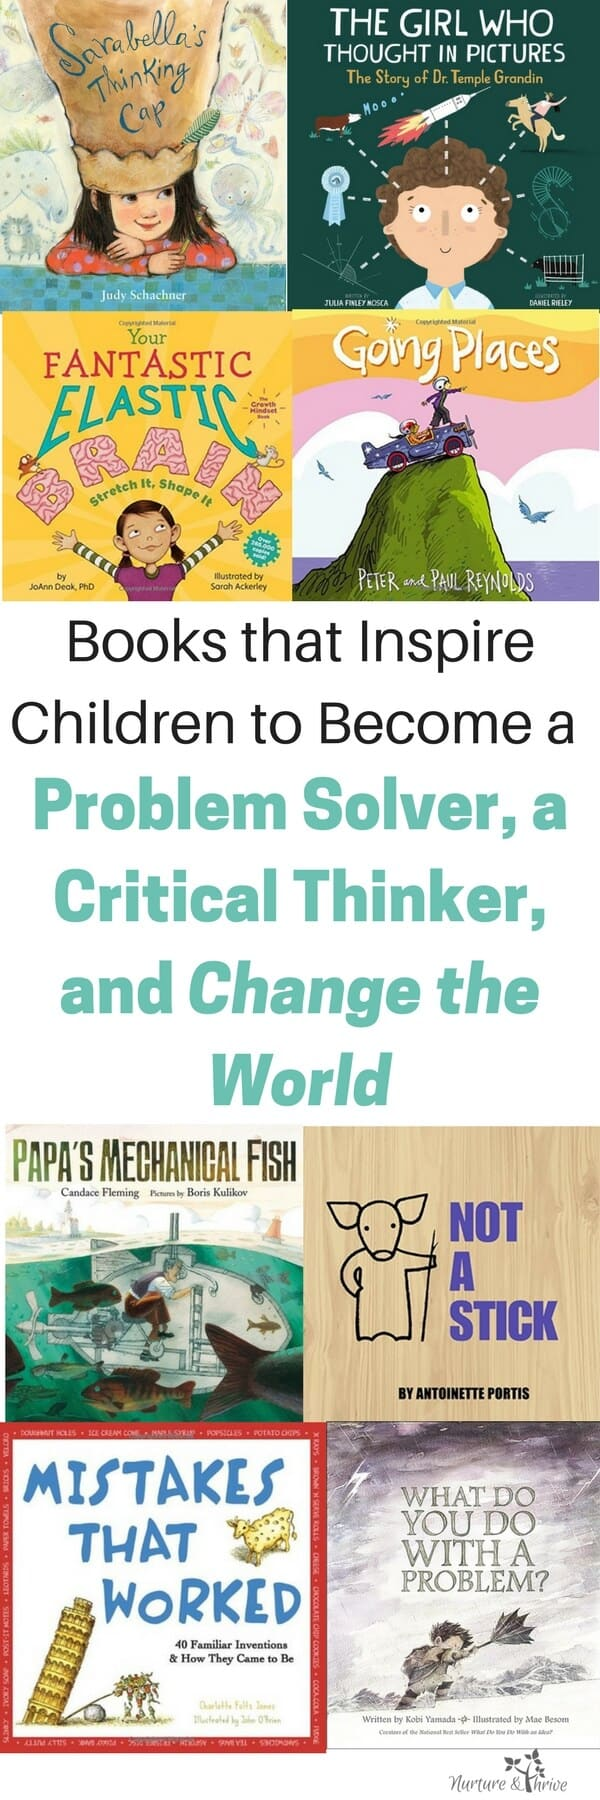 Children's Books that Promote Critical Thinking